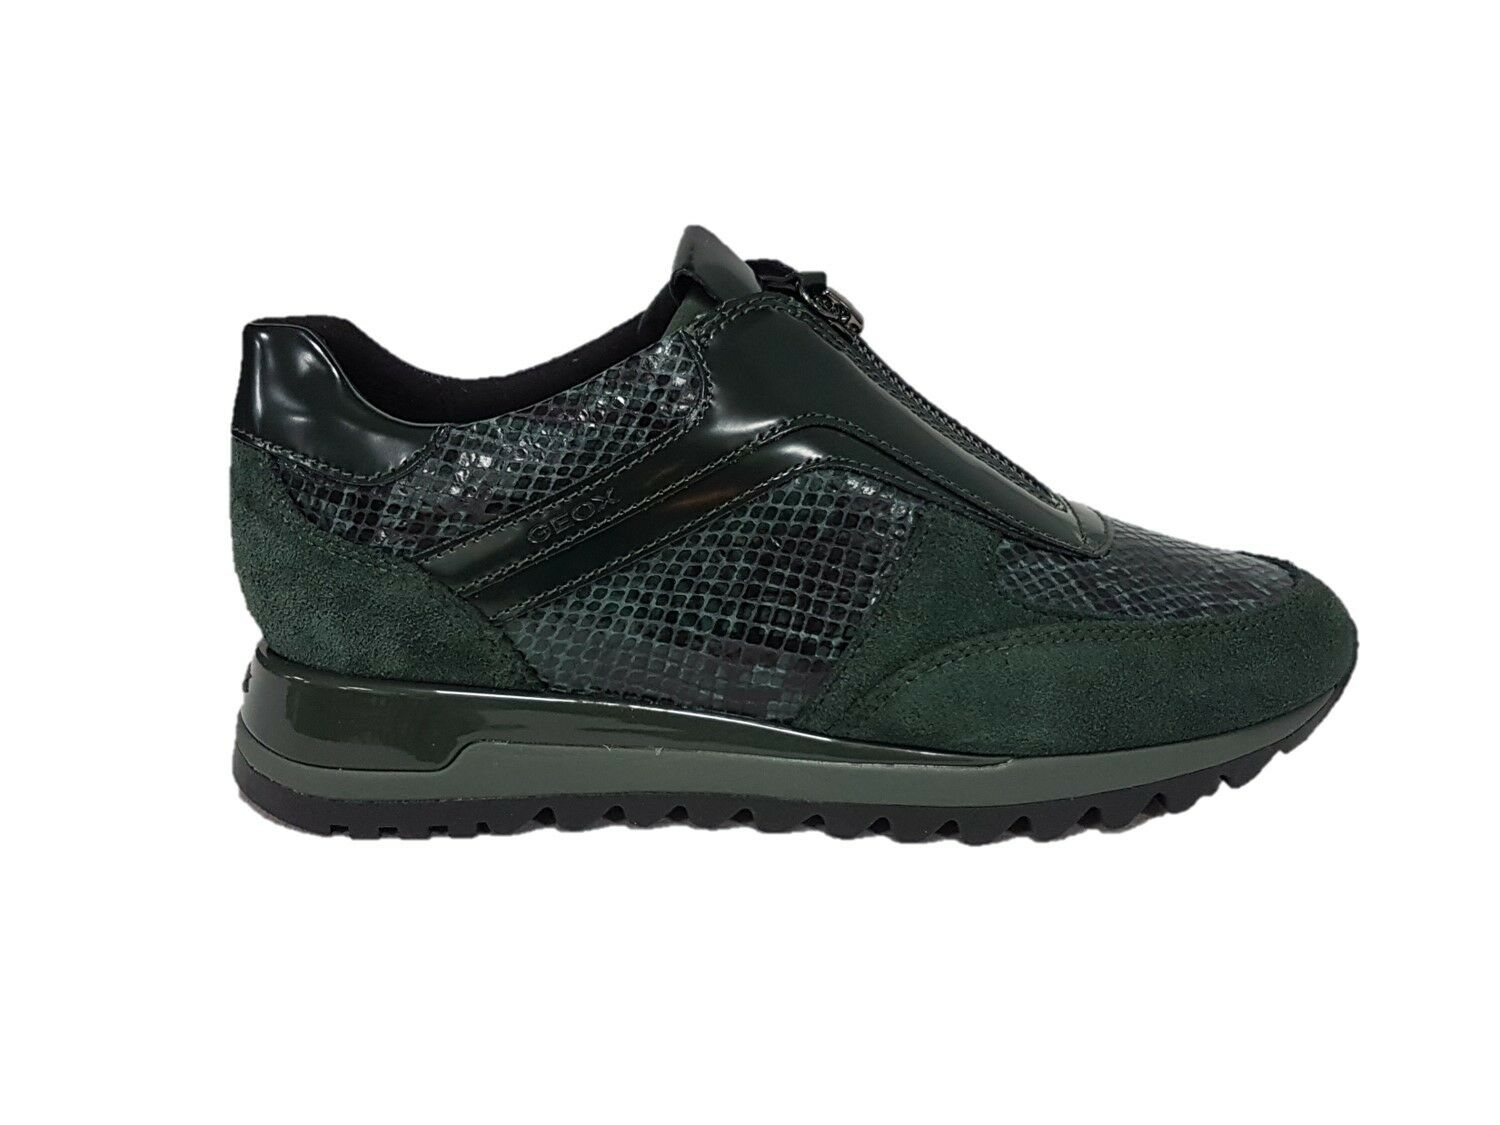 Geox sneaker donna d84aqa Tabely d84aqa donna verde n°39 8a4806